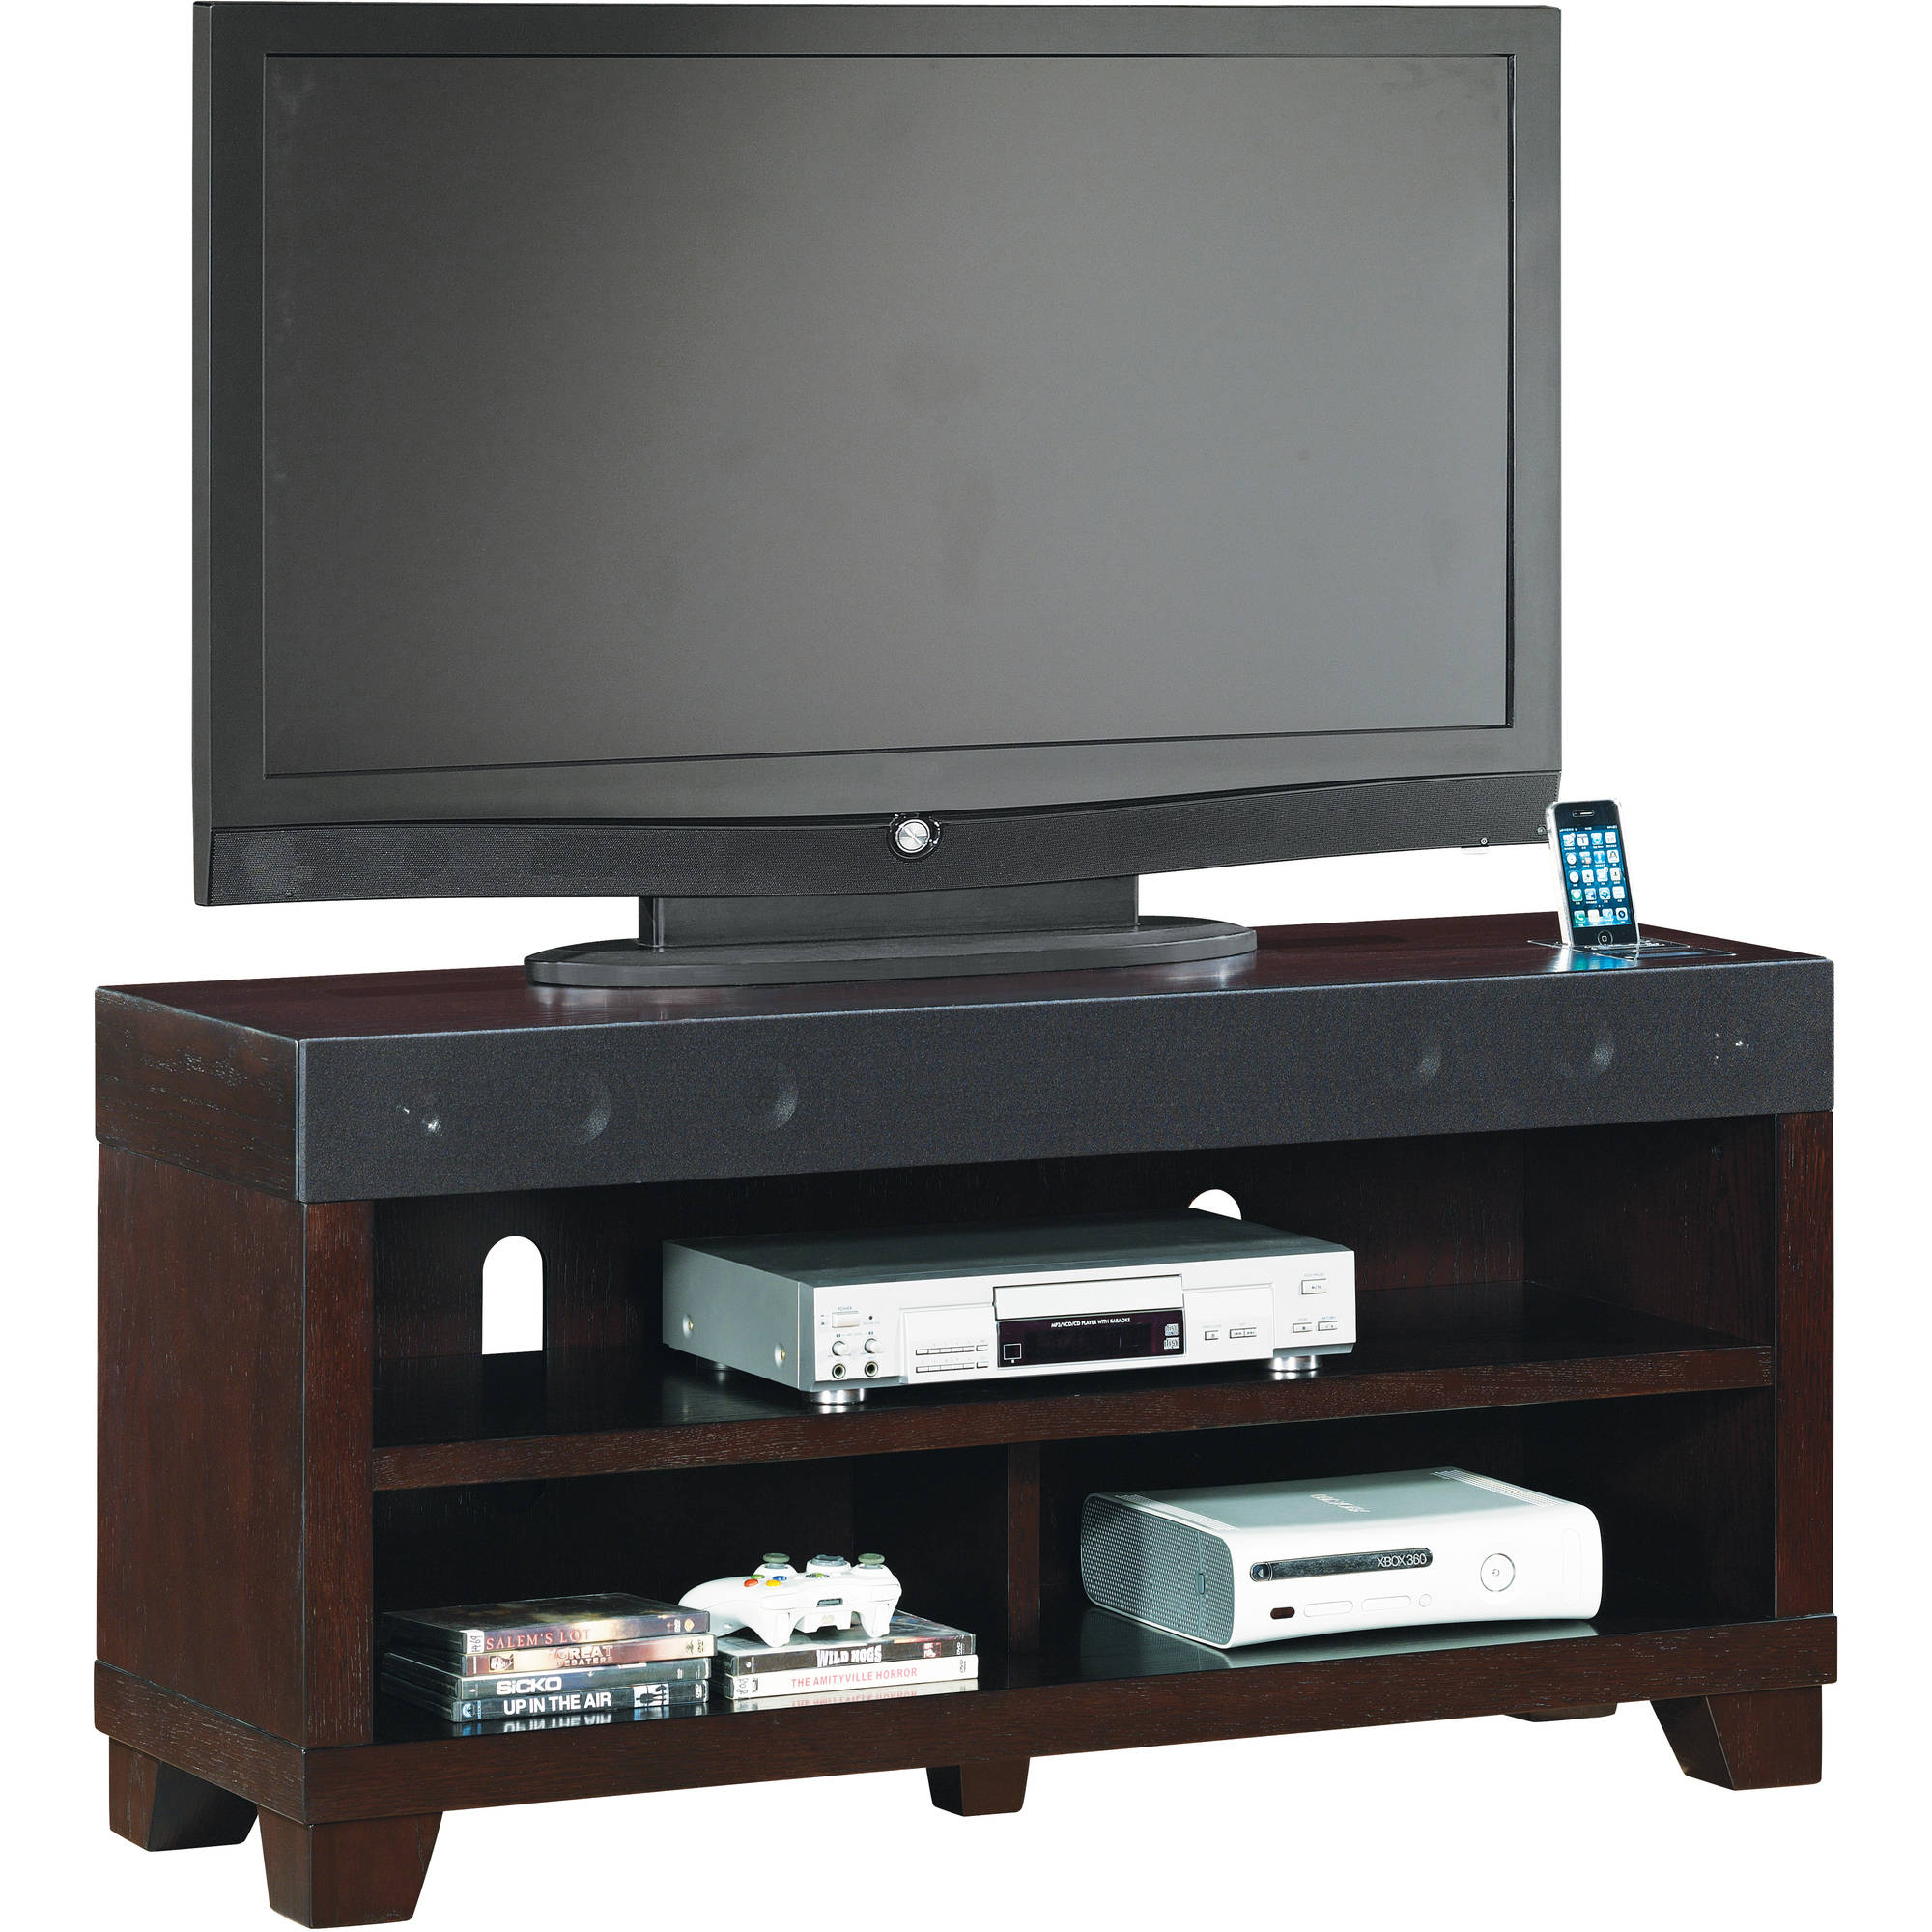 Gotham Tv Stand For Tvs Up To 70 Silver Black Walmart Com